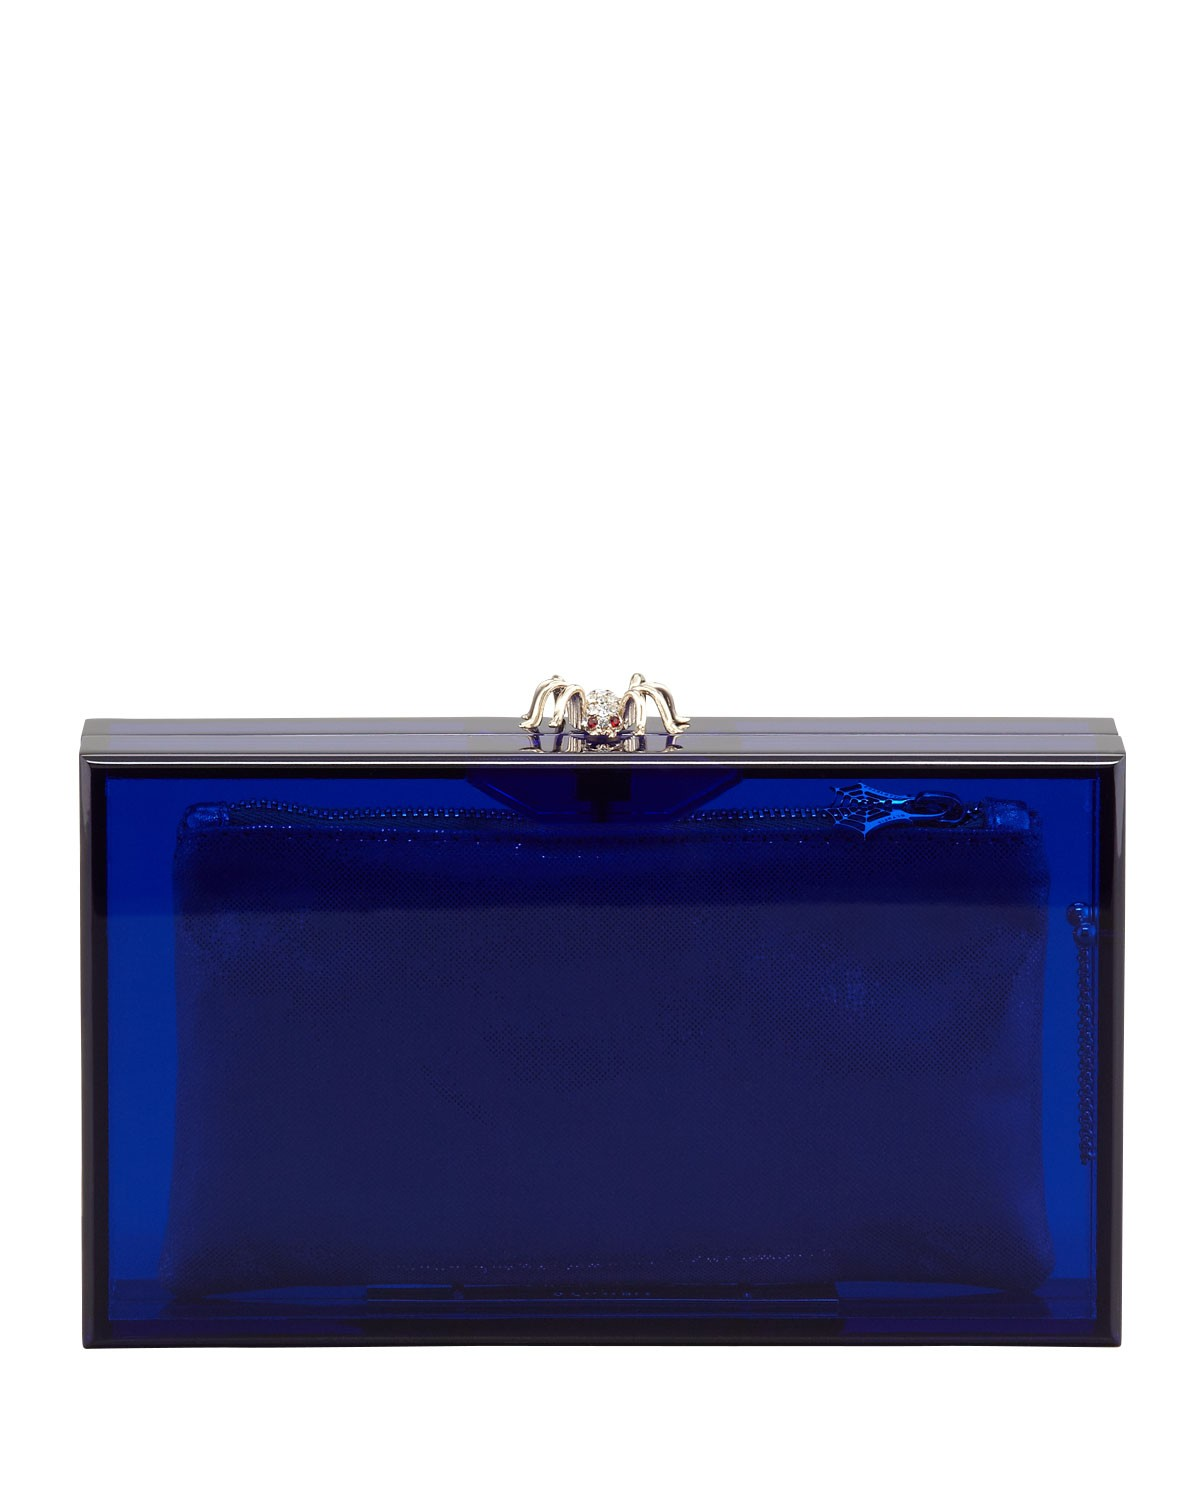 Pandora Spider Clutch Box, Blue - Charlotte Olympia